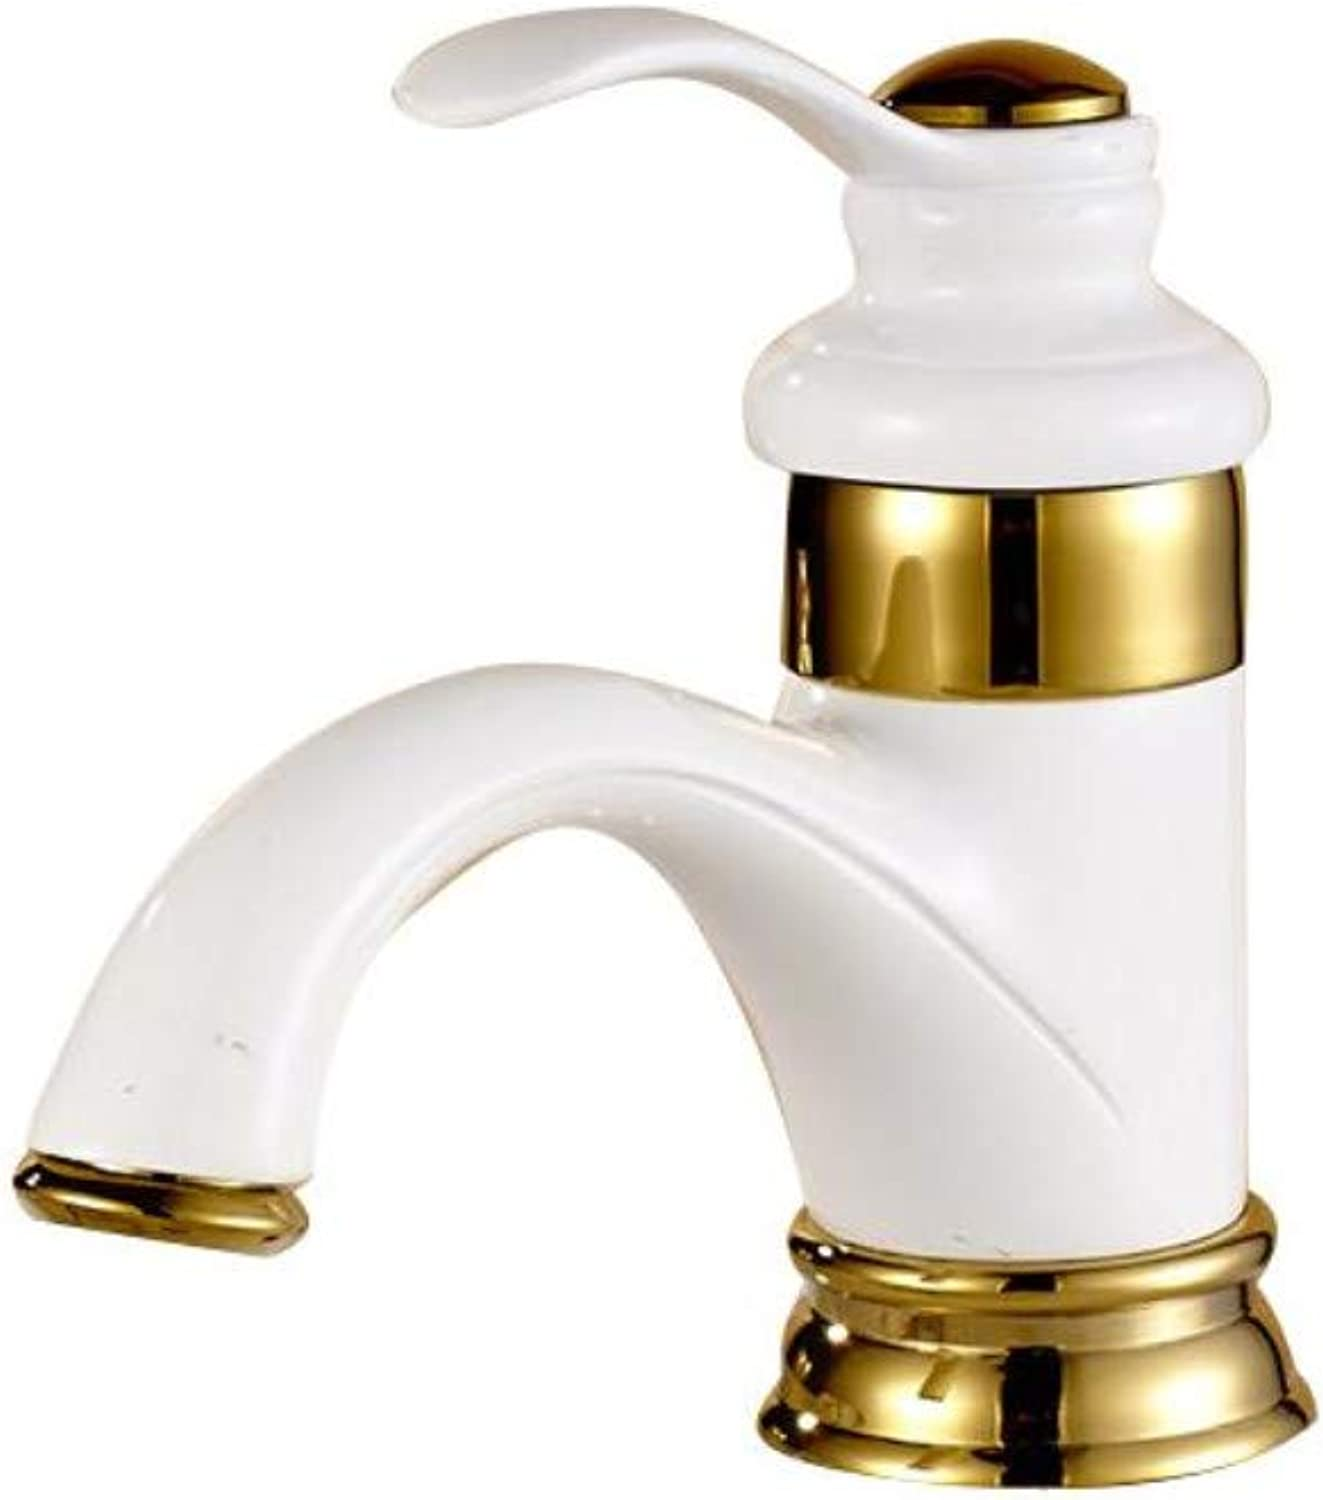 European Copper washbasin Faucet hot and Cold Water wash Basin Single Hole Basin Bathroom Home Mixing Faucet